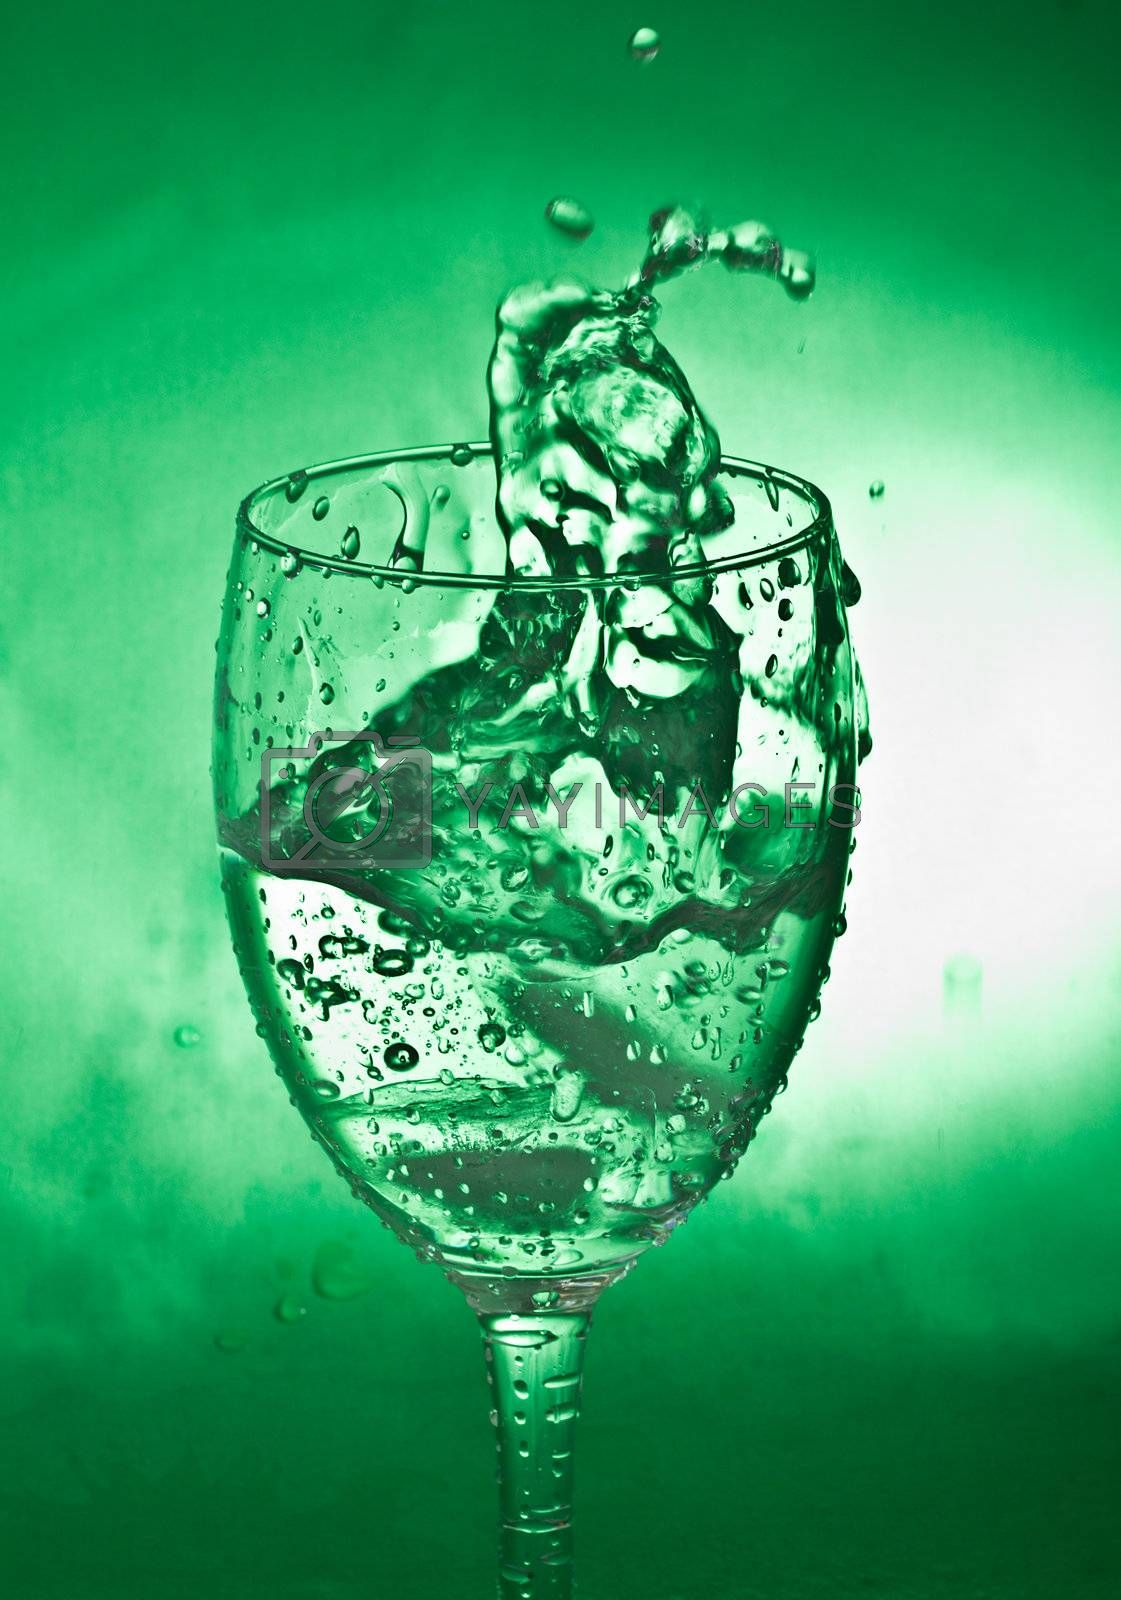 close-up glass with water splash on green background